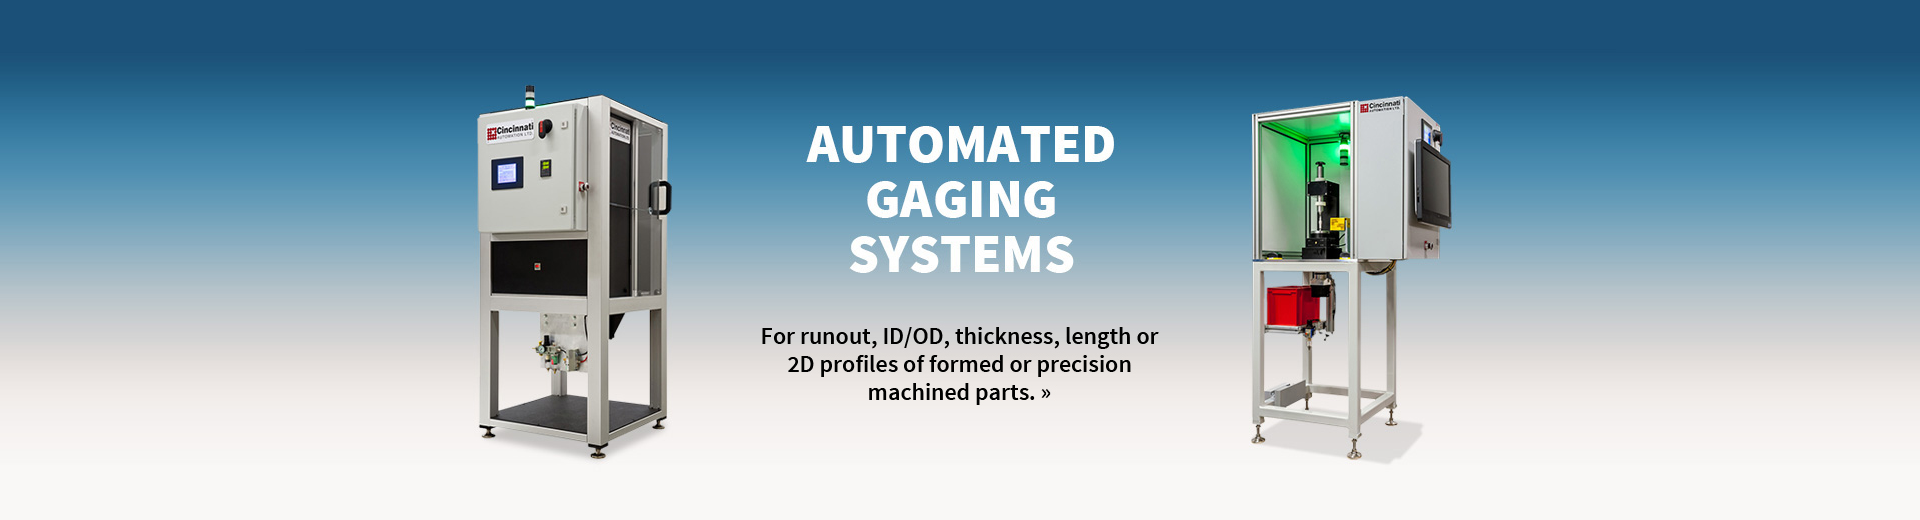 Slide 3 | Automated Gaging Systems